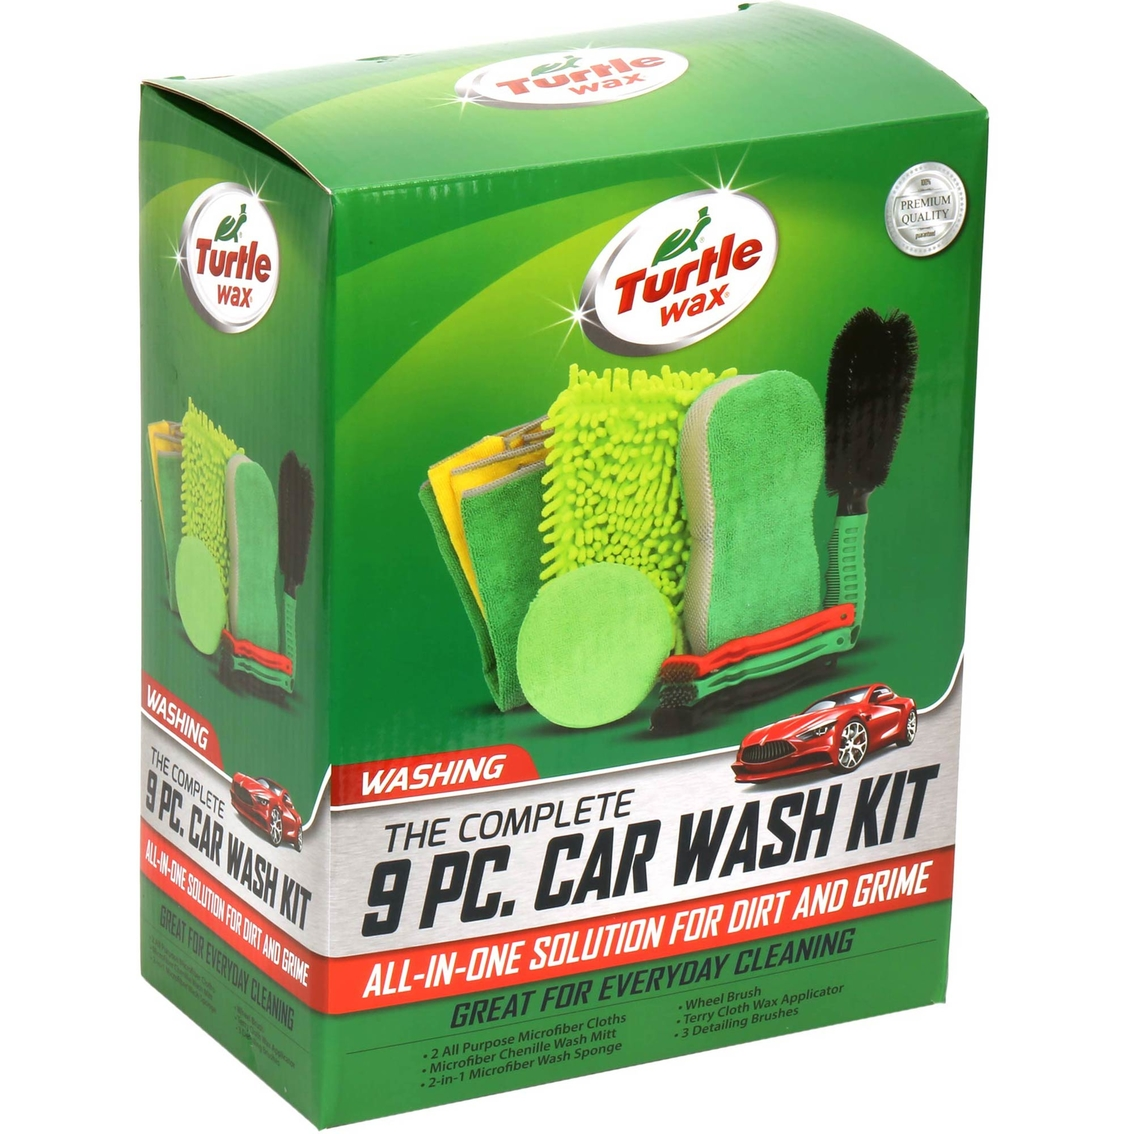 Turtle Wax The Complete 9 Pc Car Wash Kit Care Cleaning More